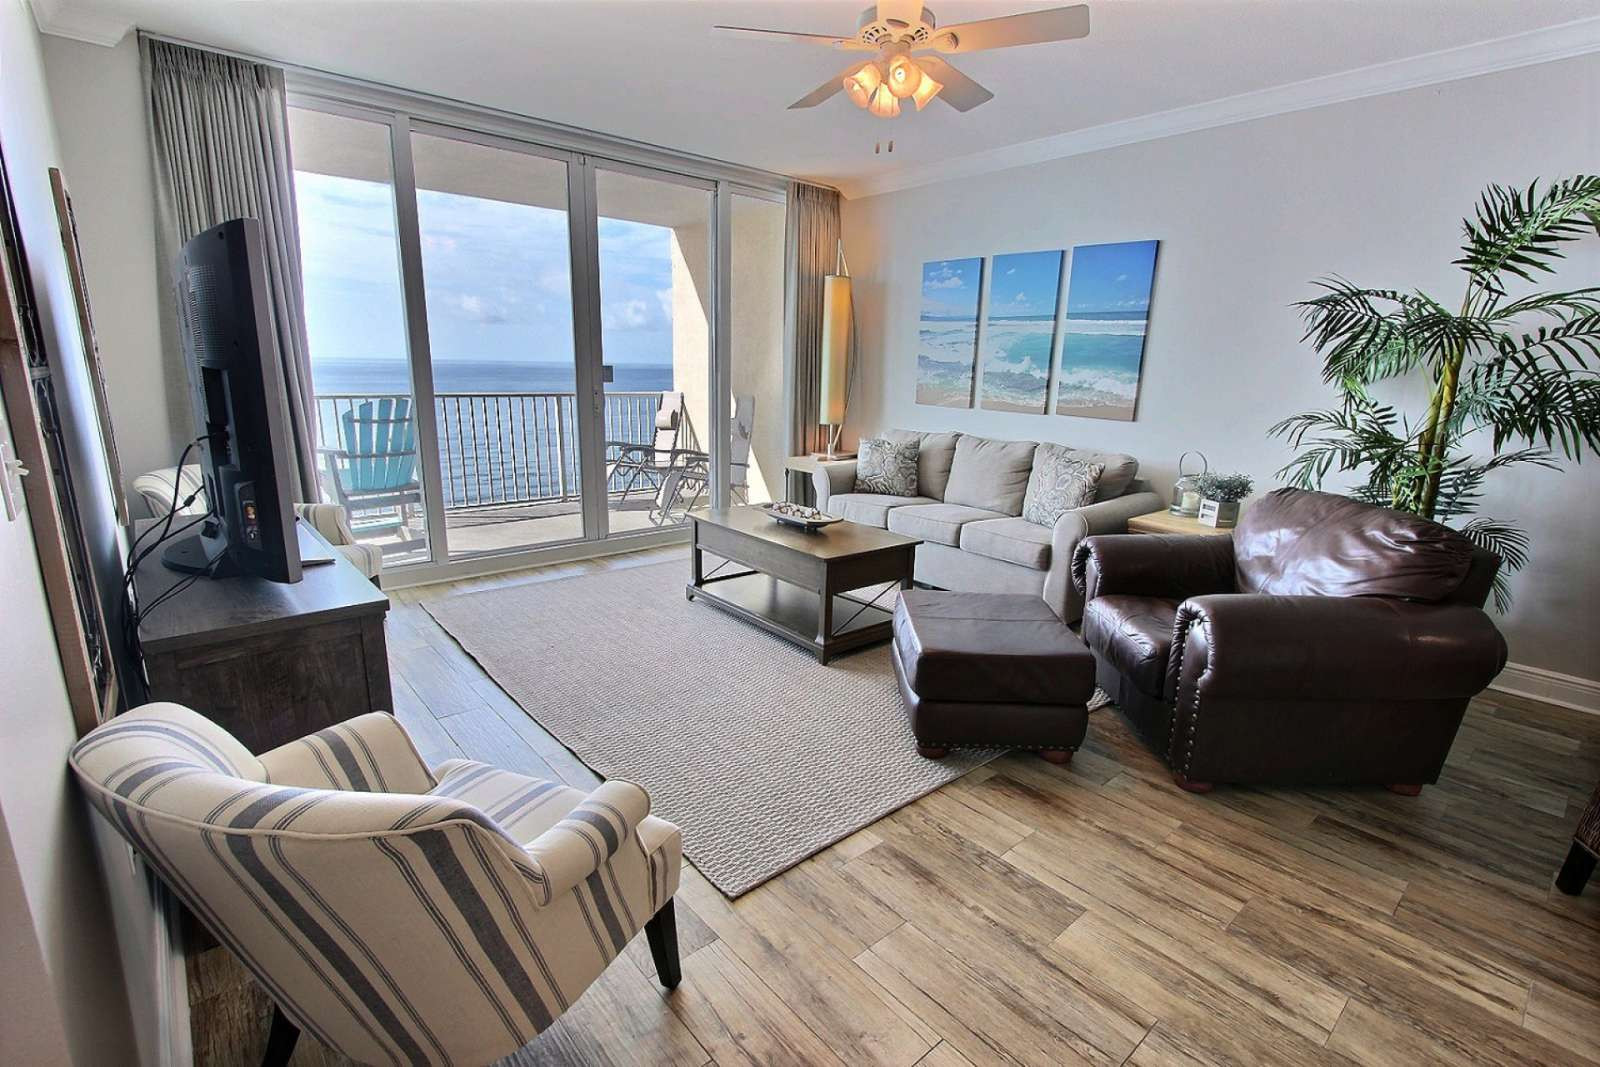 Boardwalk Hardwood Floors St Louis Of Gulf Shores Vacation Rental San Carlos 1408 San Carlos Condo within Gulf Shores Vacation Rental San Carlos 1408 San Carlos Condo Rental On Itrip Net